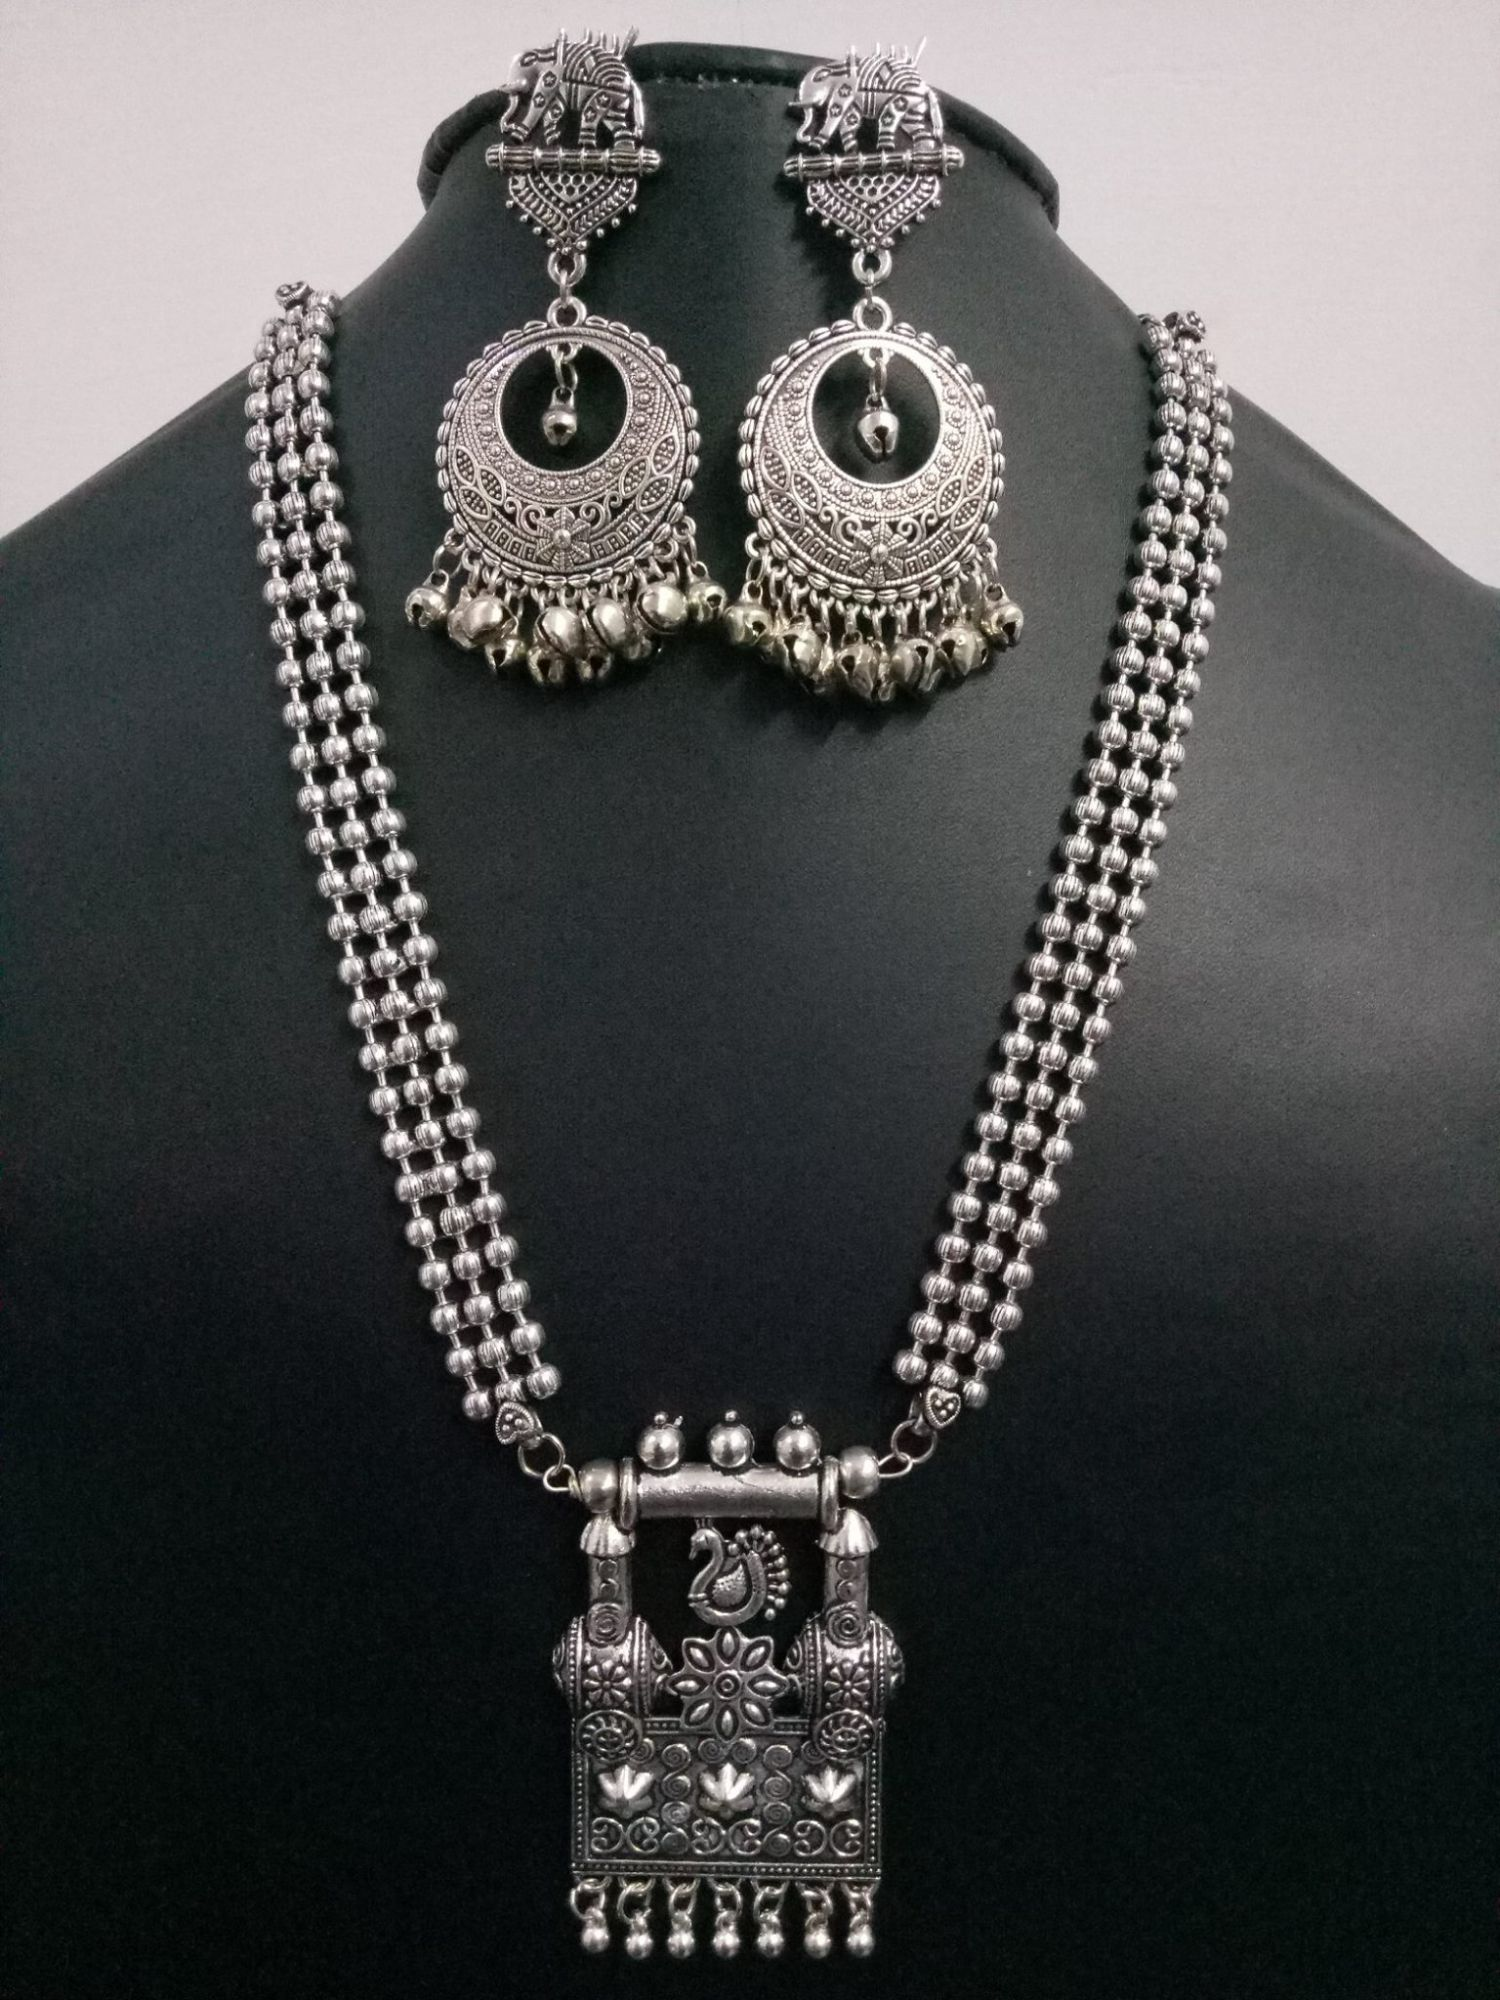 Magnificent Ball Chain Necklace Set